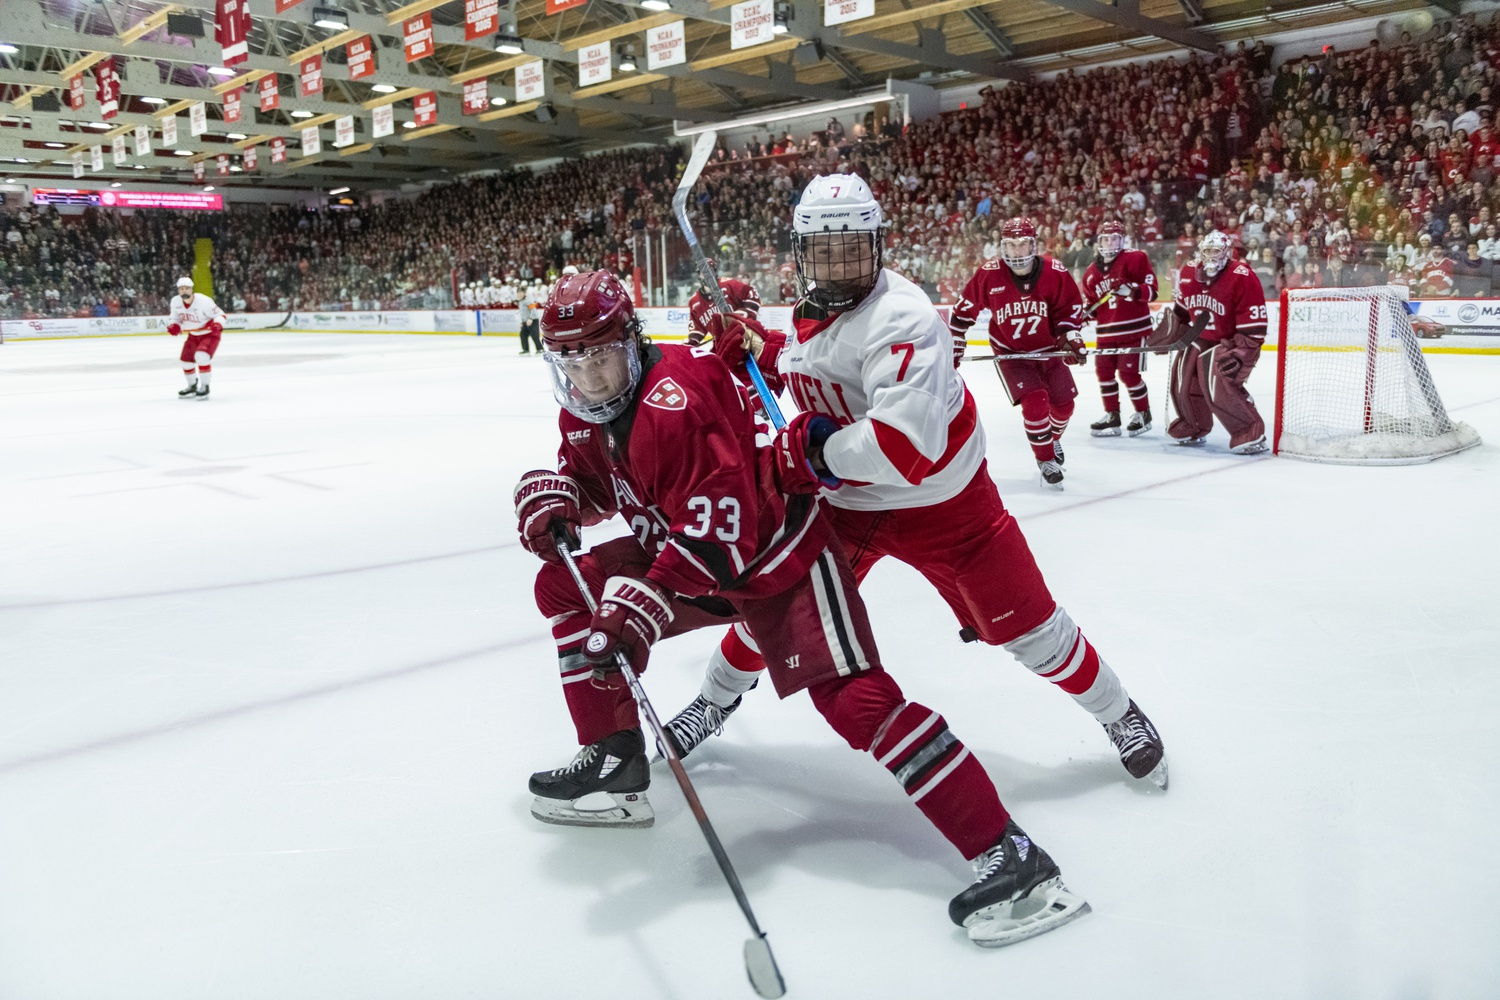 The latest clash between Harvard and Cornell ended in stalemate, despite a late go-ahead goal from Crimson sophomore Jack Drury.